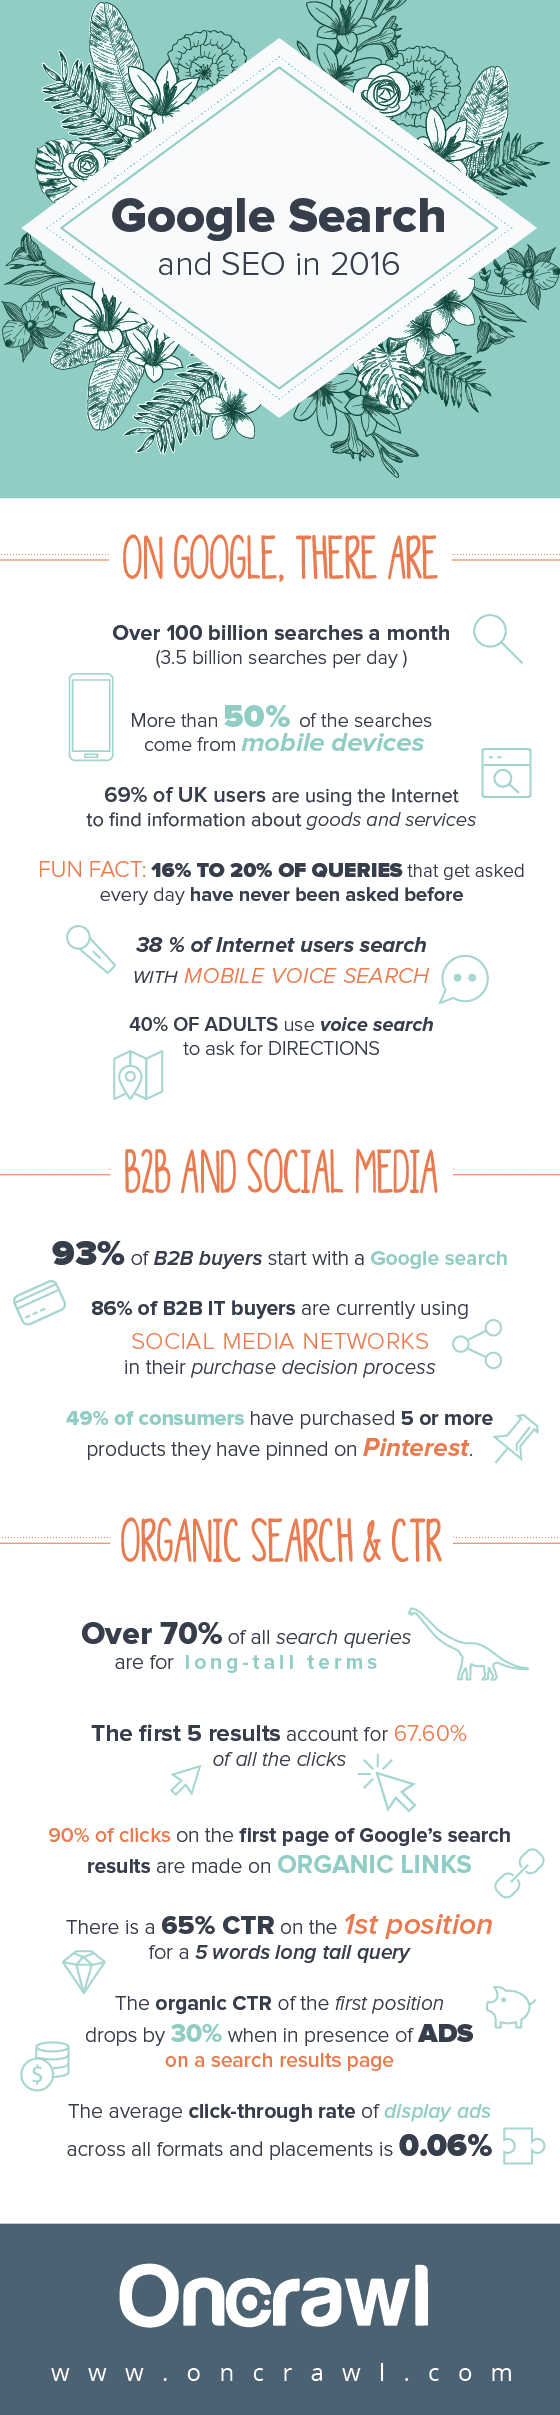 Infographic: Google Search and SEO in 2016